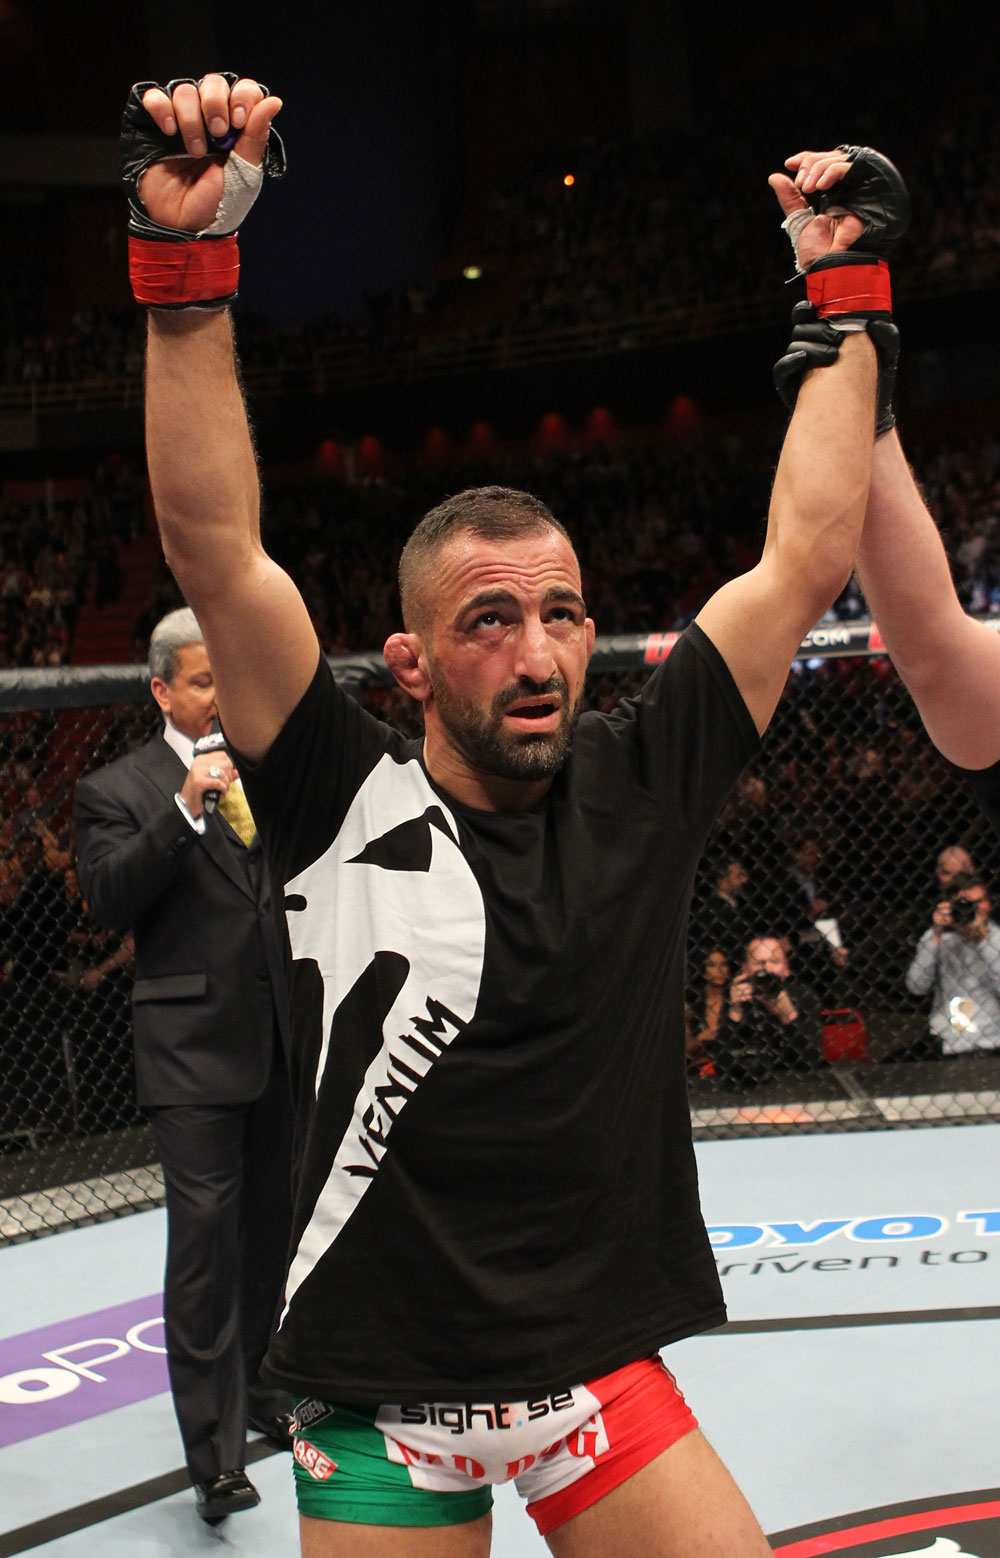 STOCKHOLM, SWEDEN - APRIL 14:  Reza Madadi of Sweden reacts after defeating Yoislandy Izquierdo at the UFC on Fuel TV event at Ericsson Globe on April 14, 2012 in Stockholm, Sweden.  (Photo by Josh Hedges/Zuffa LLC/Zuffa LLC via Getty Images)